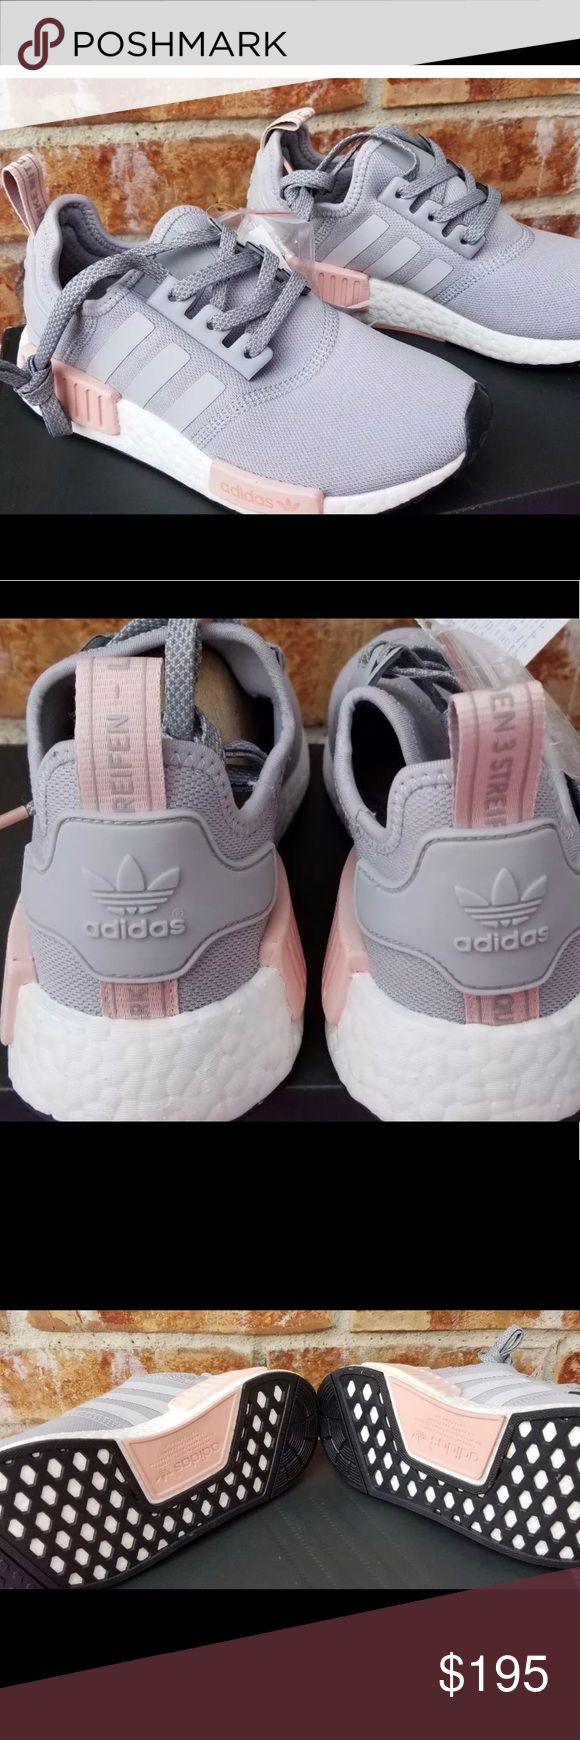 BRAND NEW ADIDAS NMD R 1 Running Shoes Brand new with tags adidas Shoes Athletic Shoes